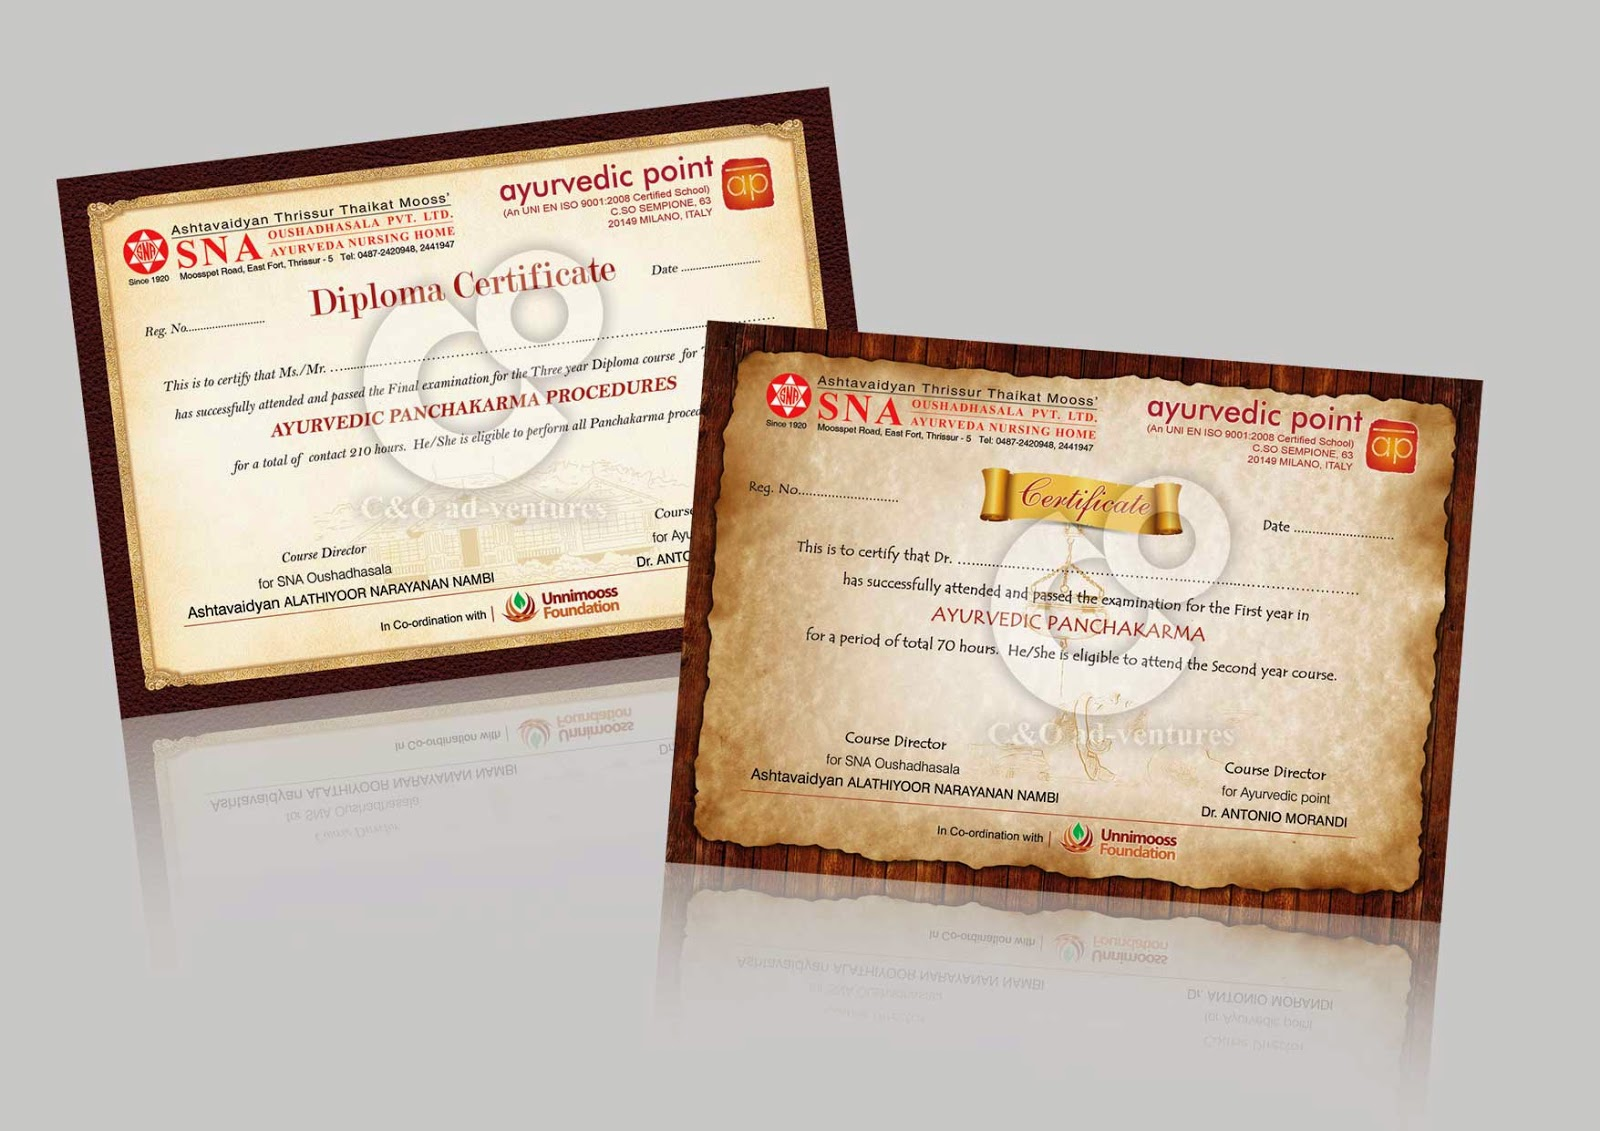 C O Ad Ventures Certificate Design For Ayurveda Course